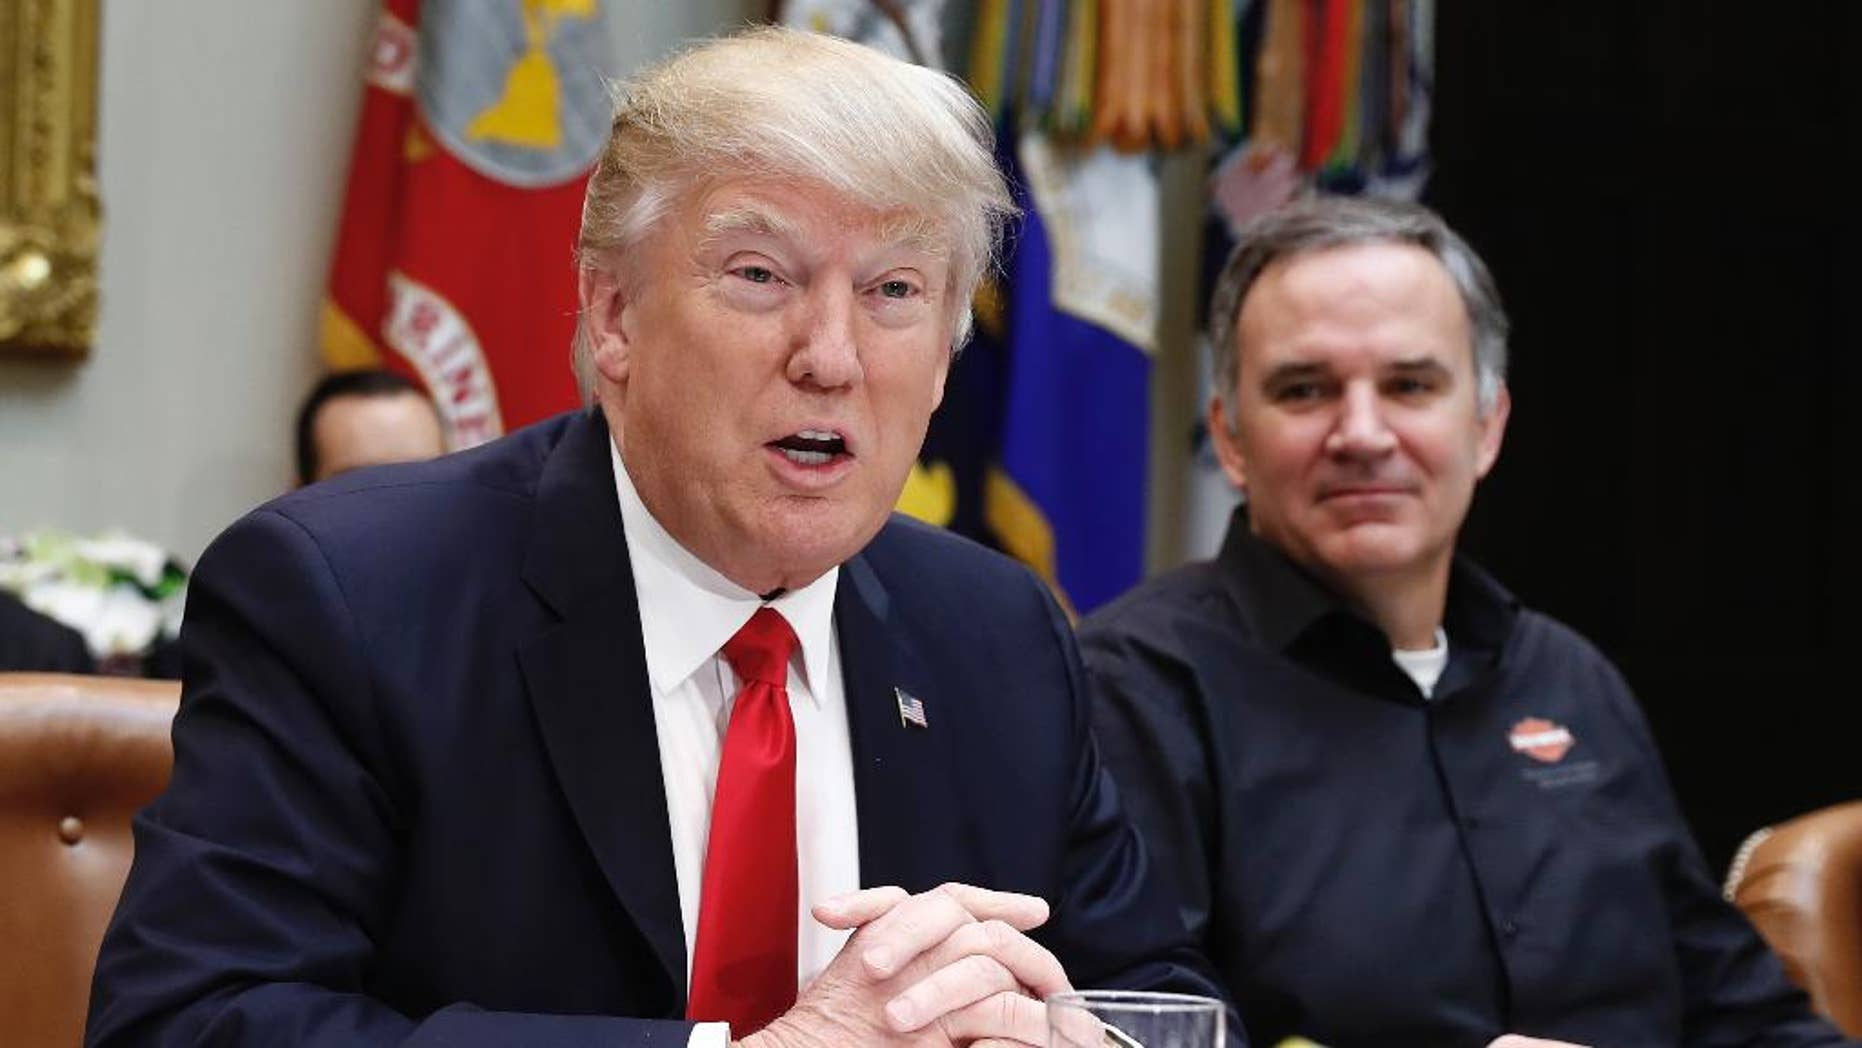 President Donald Trump, joined by Harley Davidson President and CEO Matt Levatich, talks to media before a lunch meeting with Harley Davidson executives and union representatives in the Roosevelt Room of the White House in Washington, Thursday, Feb. 2, 2017. (AP Photo/Carolyn Kaster)